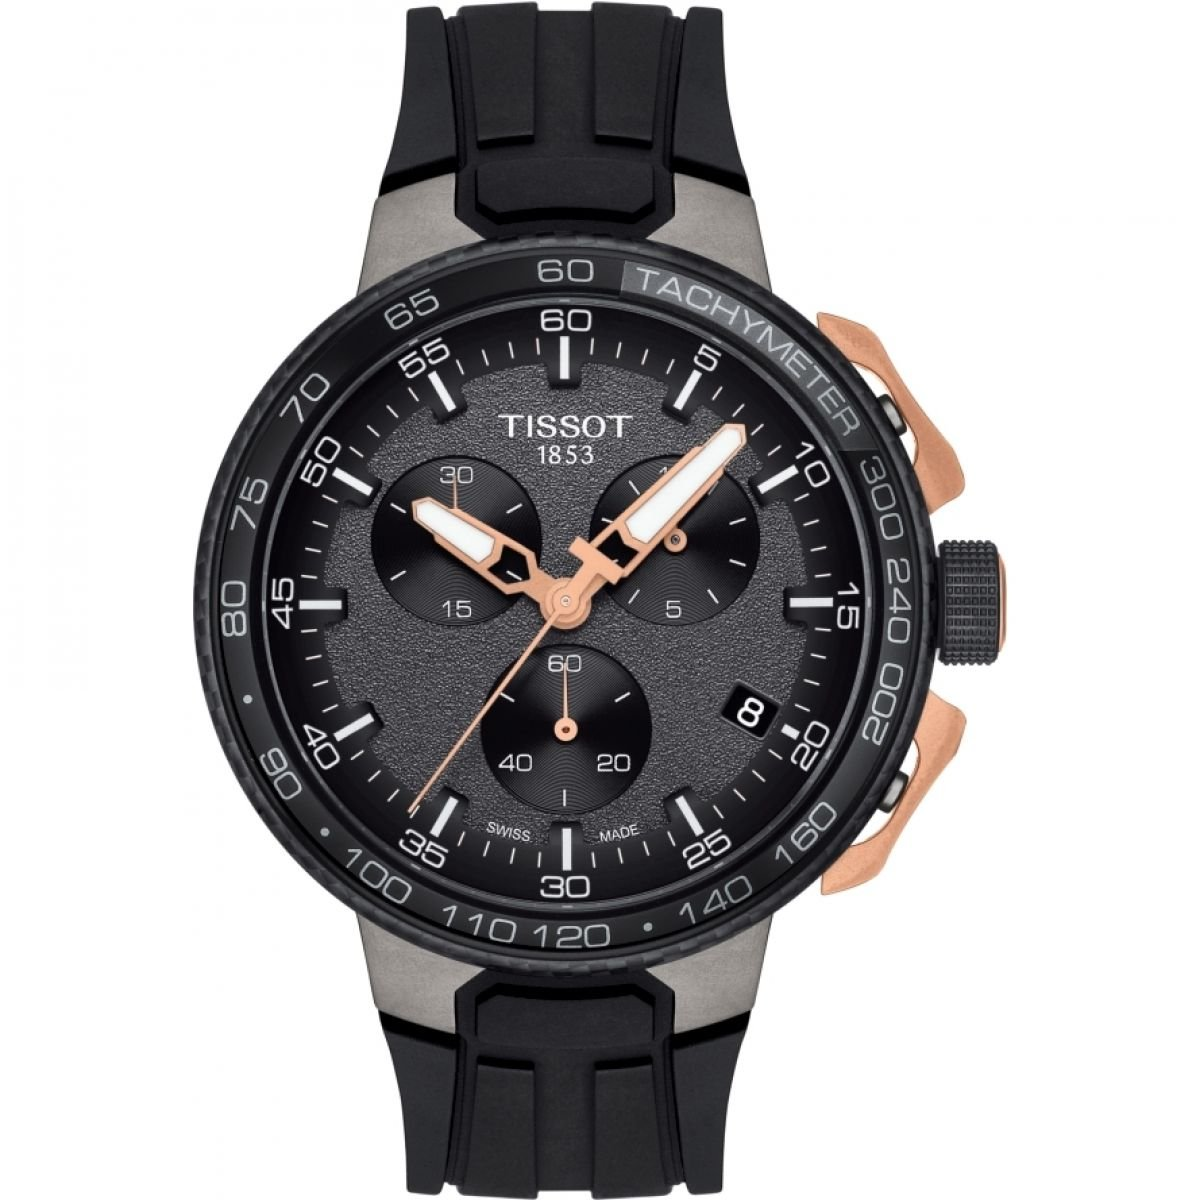 b877518d5f4 Amazon.com  Tissot T-Race Cycling Black Rose Gold T111.417.37.441.07   Watches